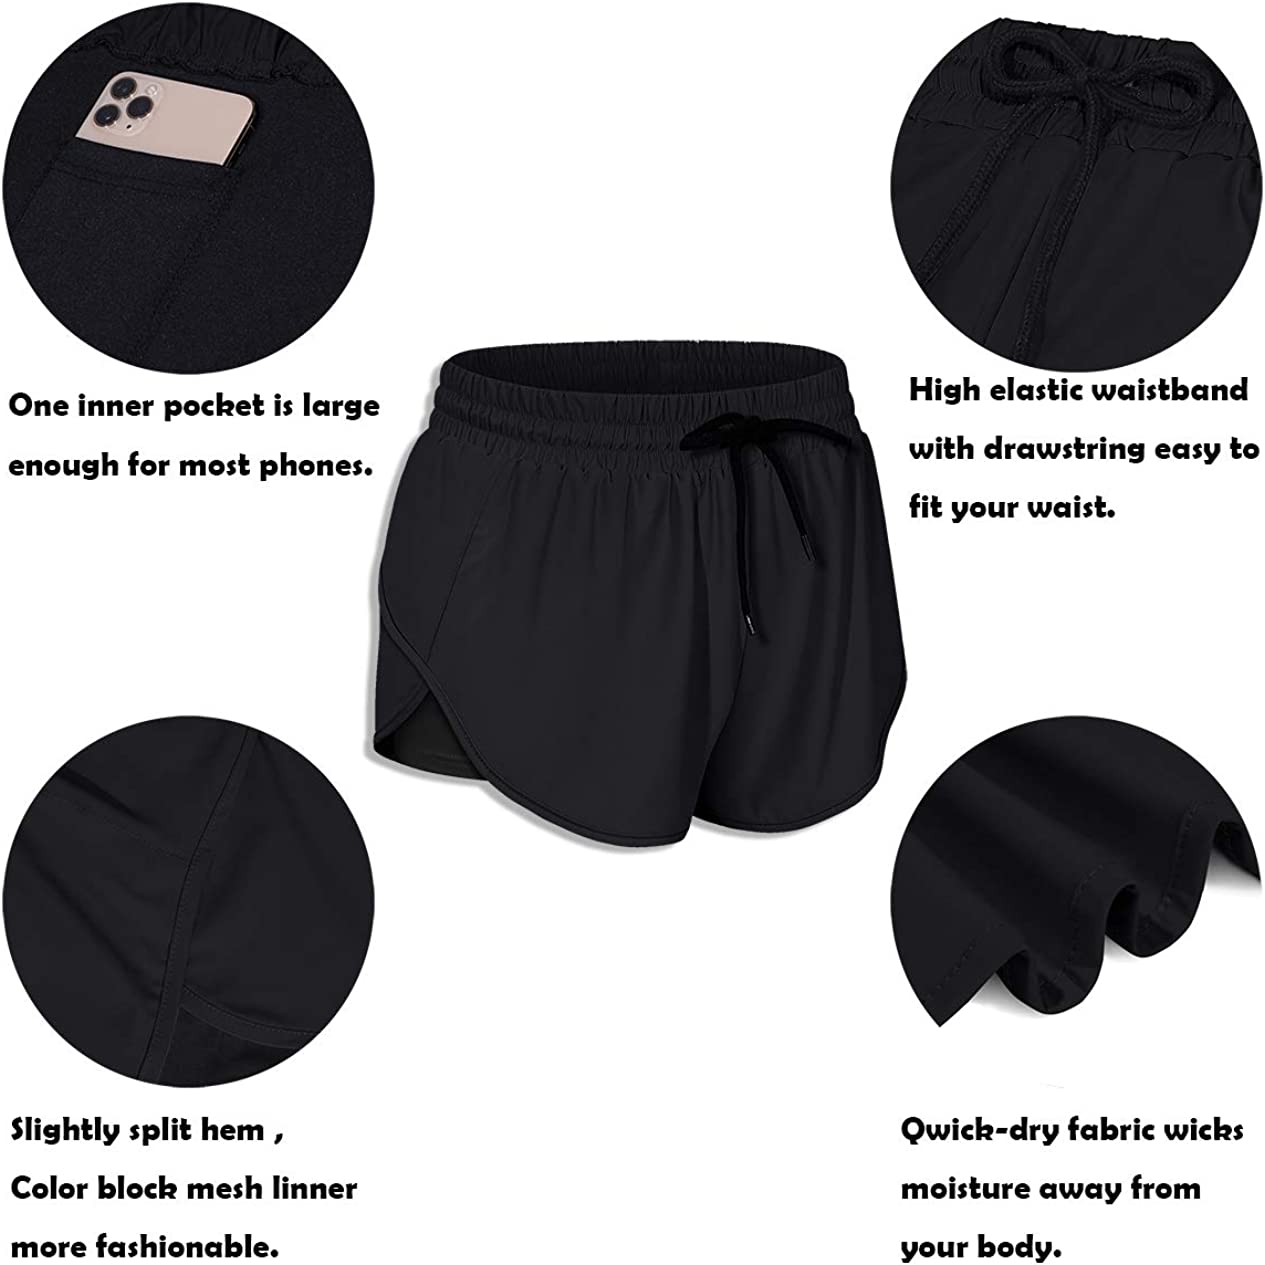 BLEVONH 2N1 Shorts Women,Stretch Waist Light Yoga Running Short with Pocket Ladies Color Block Fast Dry Workout Sports Athletic Short Pants Woman Classy Sturdy Active Wear Bottoms Black M